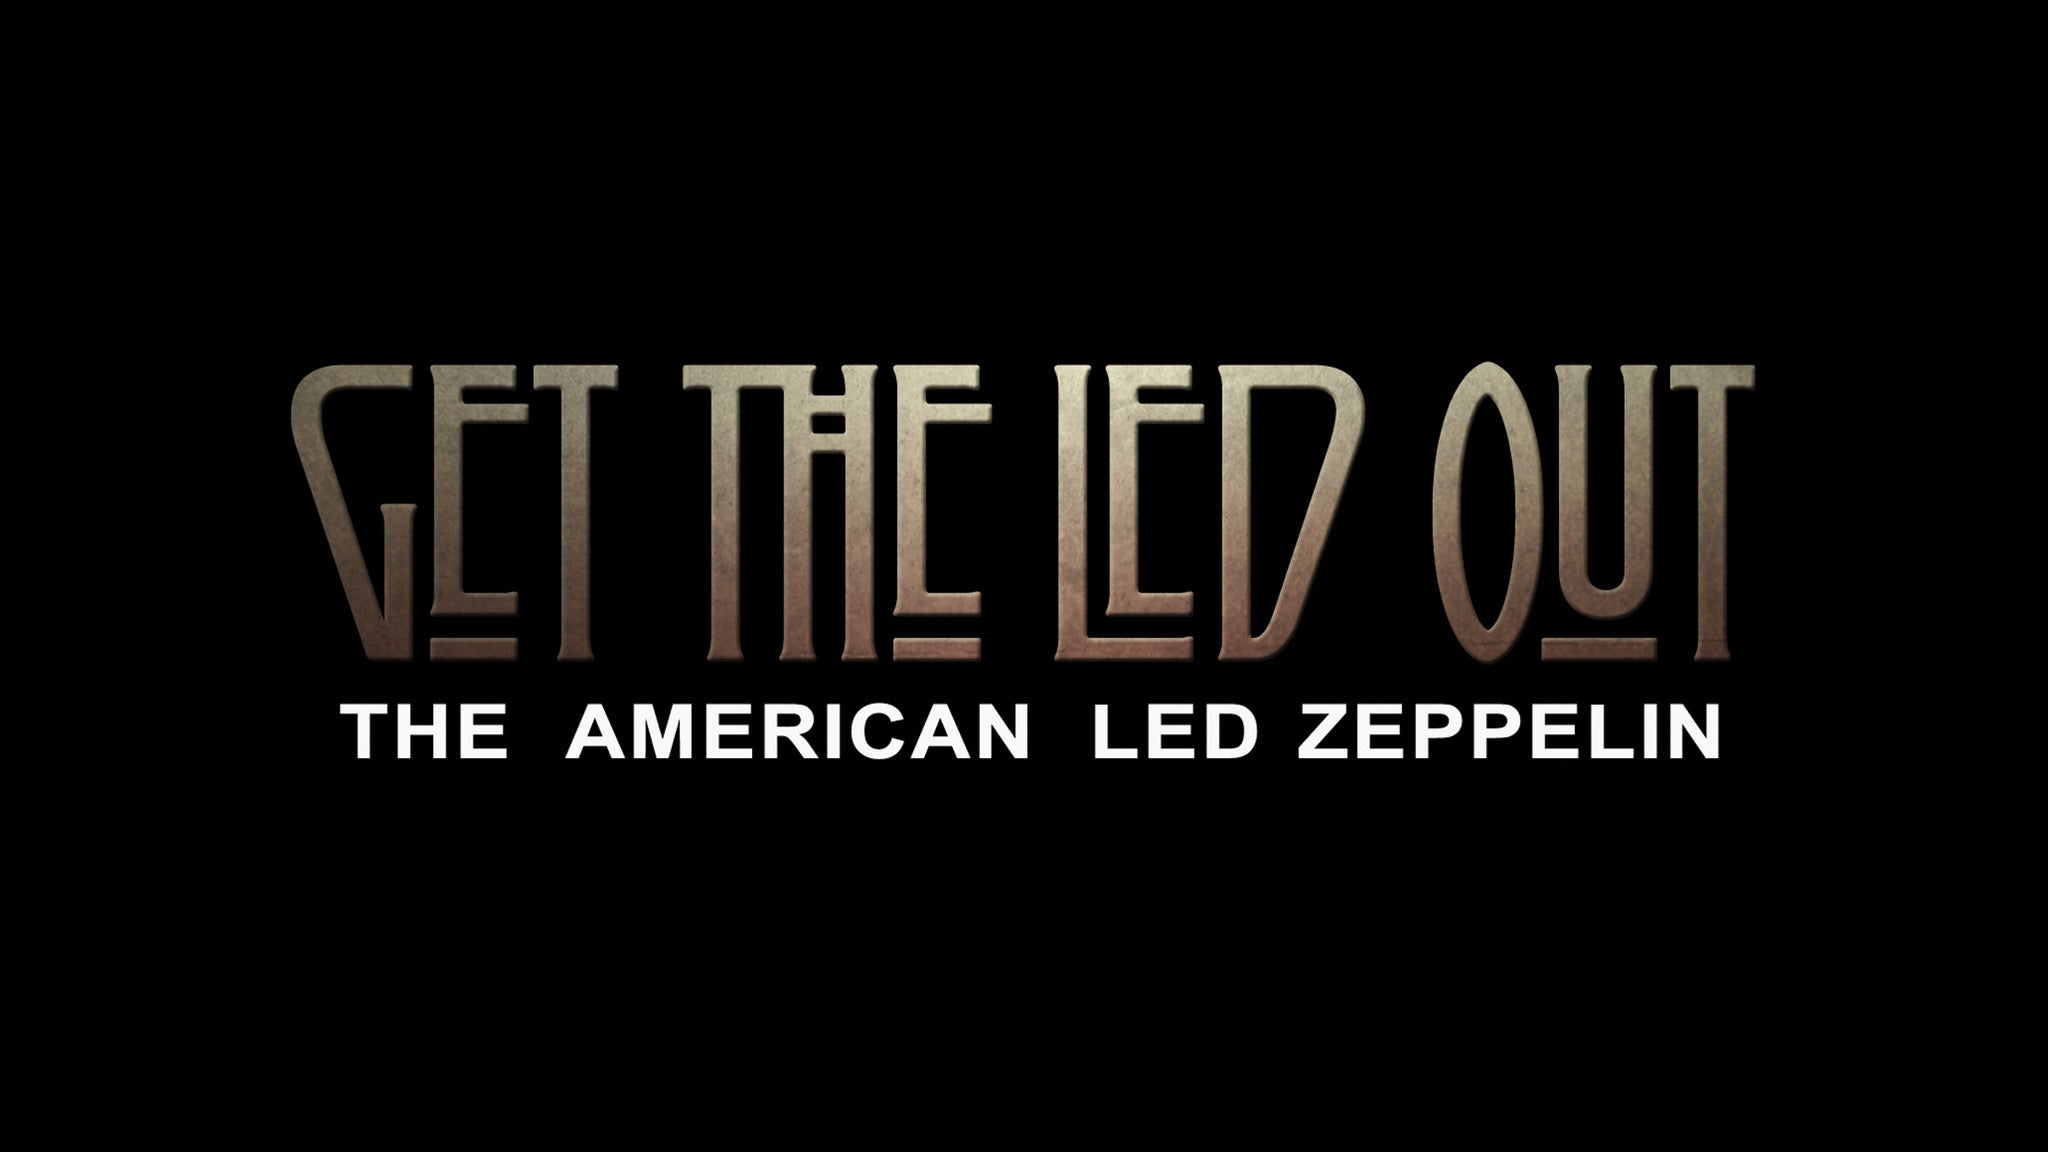 Get the Led Out at Chandler Arts Center